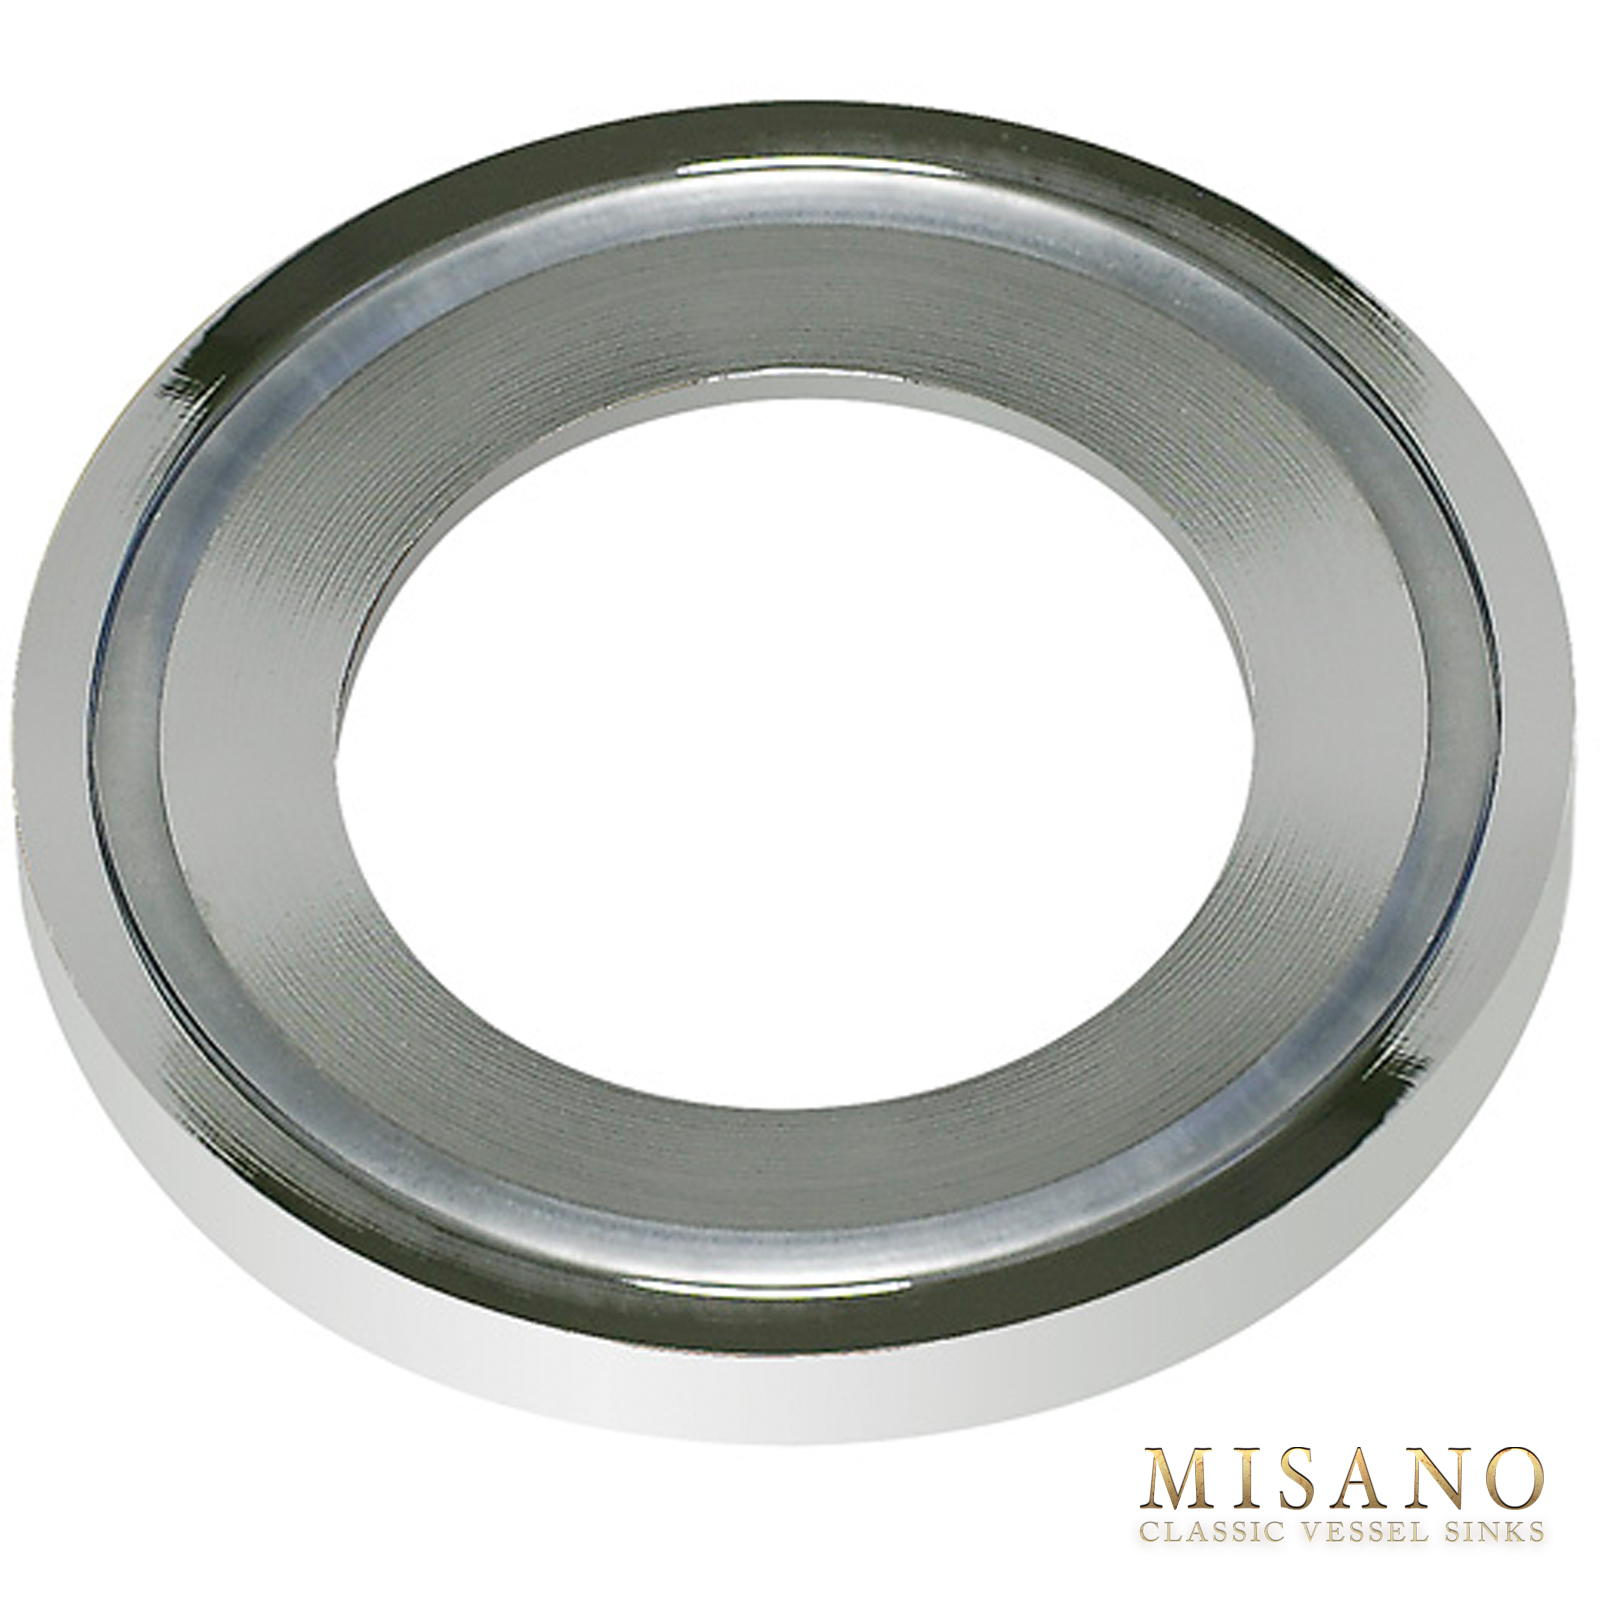 Vessel Sink Mounting Ring : Mounting Ring for Vessel Sink - Chrome Installation Mount Support ...